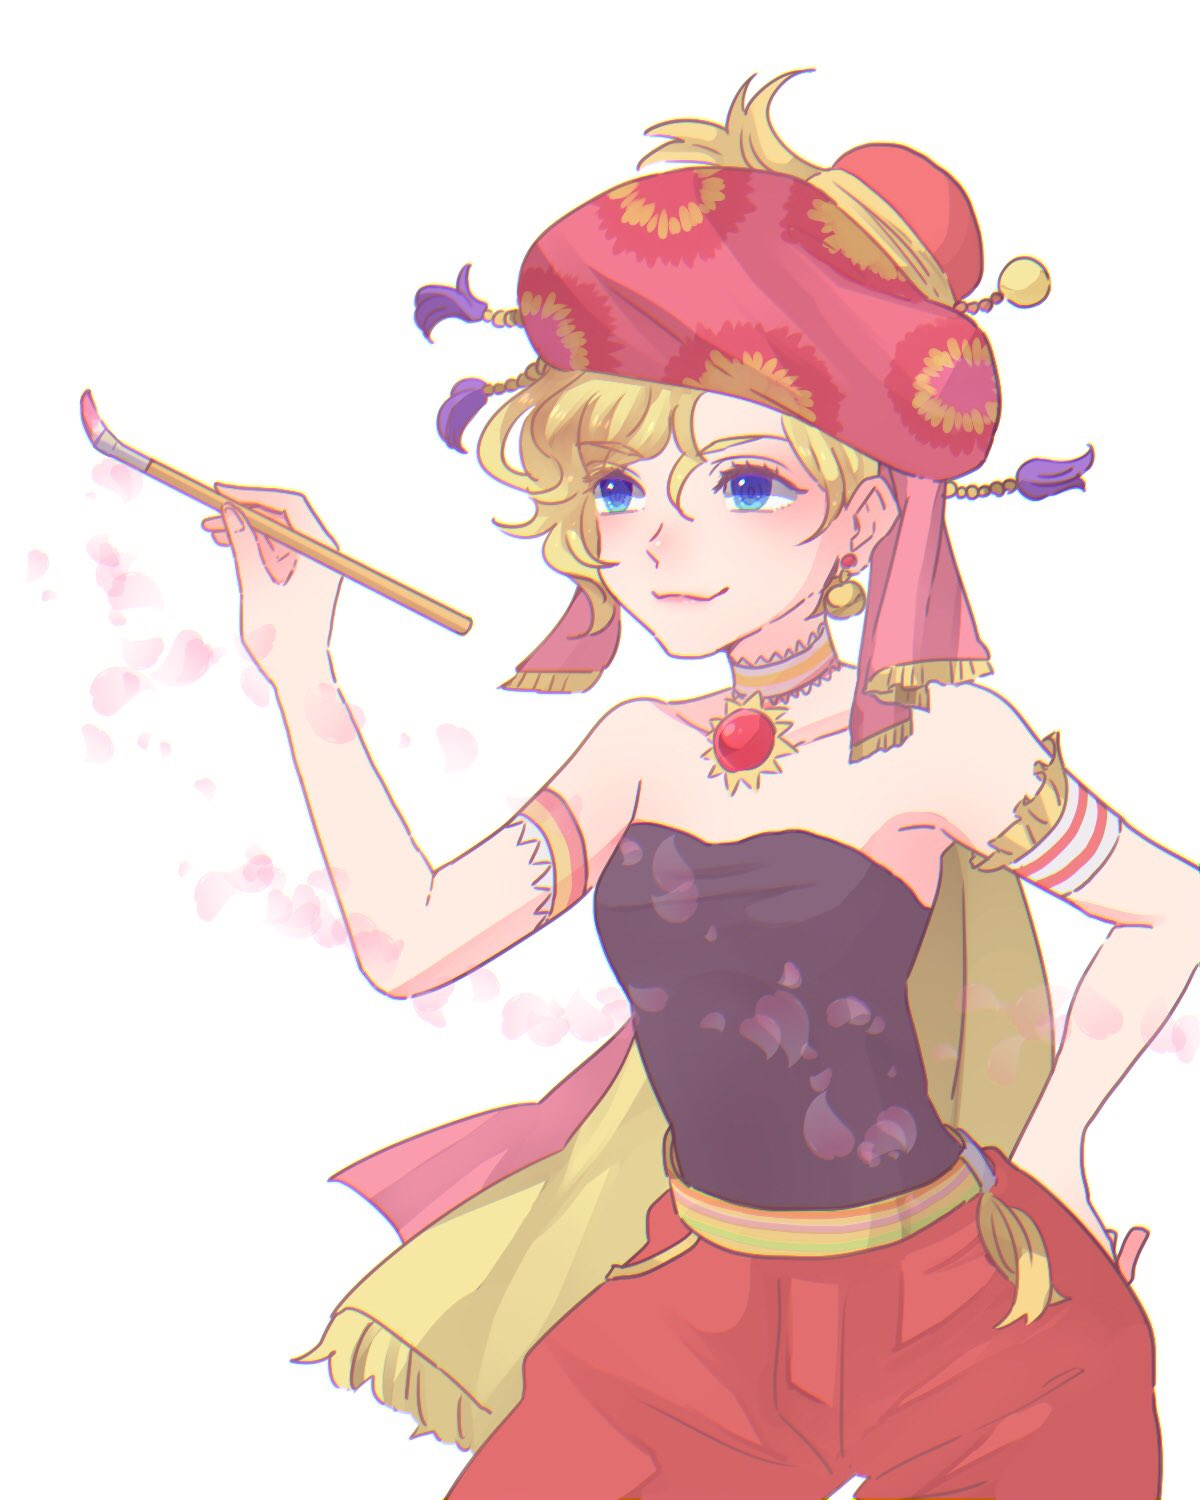 1girl armband bare_shoulders black_shirt blonde_hair blue_eyes breasts choker closed_mouth earrings eyebrows_visible_through_hair final_fantasy final_fantasy_vi hair_between_eyes hand_on_hip hat highres holding holding_paintbrush jewelry paintbrush pants petals red_headwear red_pants relm_arrowny shirt short_hair small_breasts smile solo strapless strapless_shirt toufu_(toufu_53) white_background